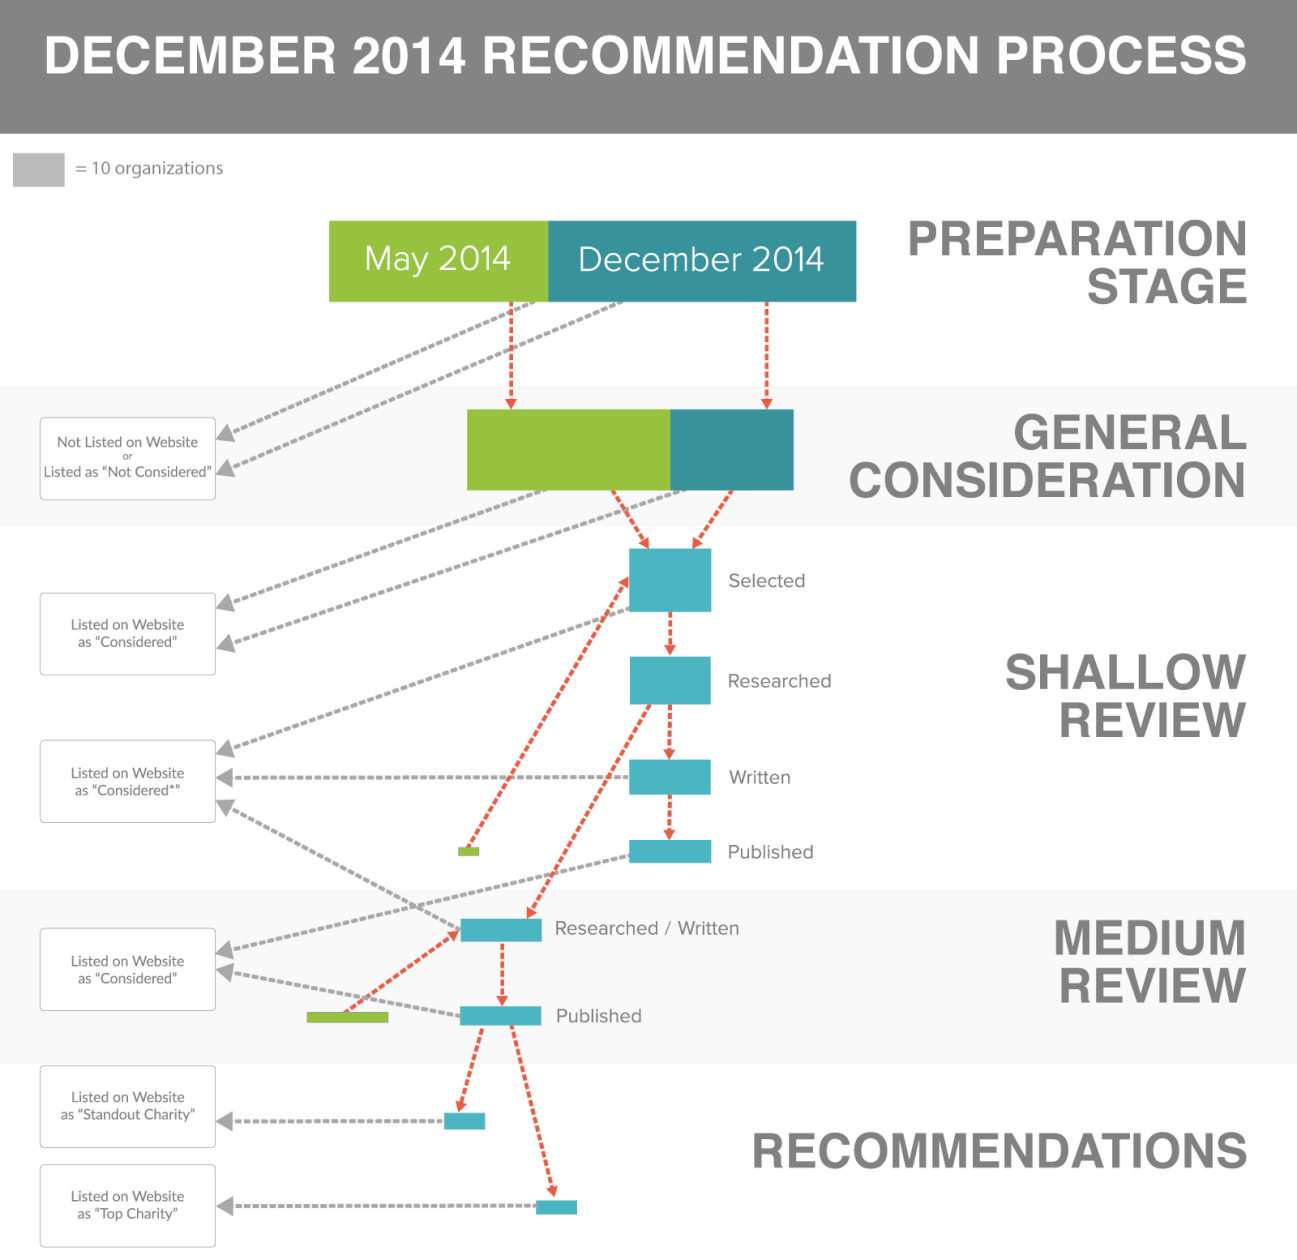 December 2014 Recommendation Process